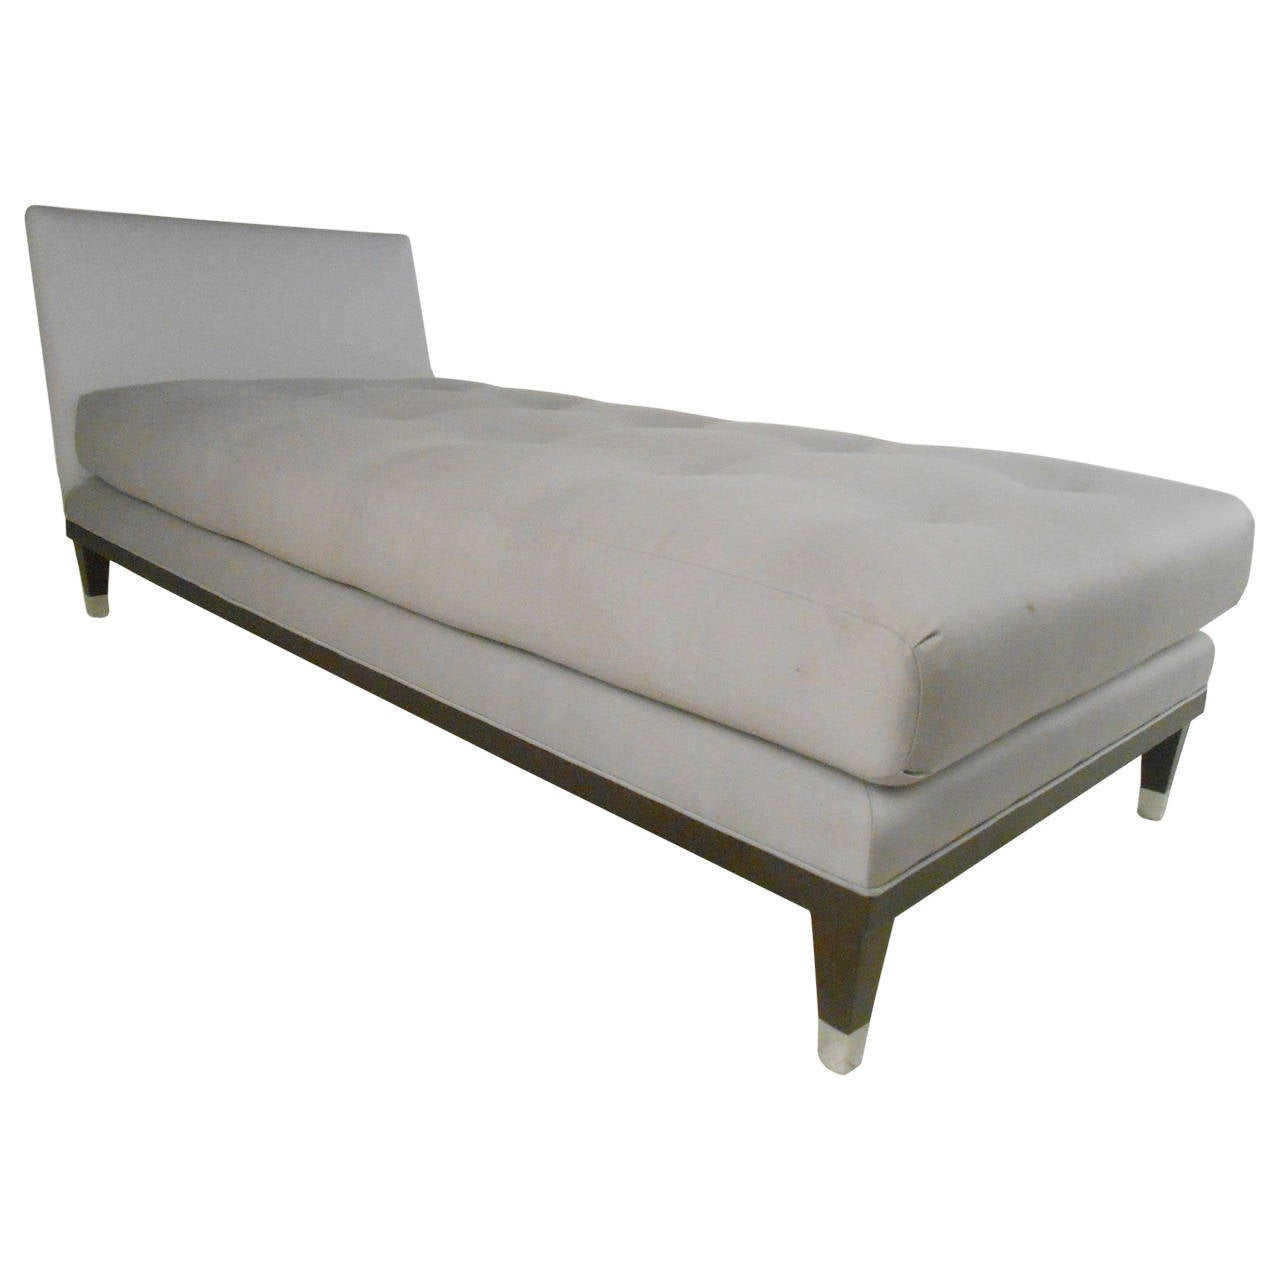 modern style chaise lounge at 1stdibs